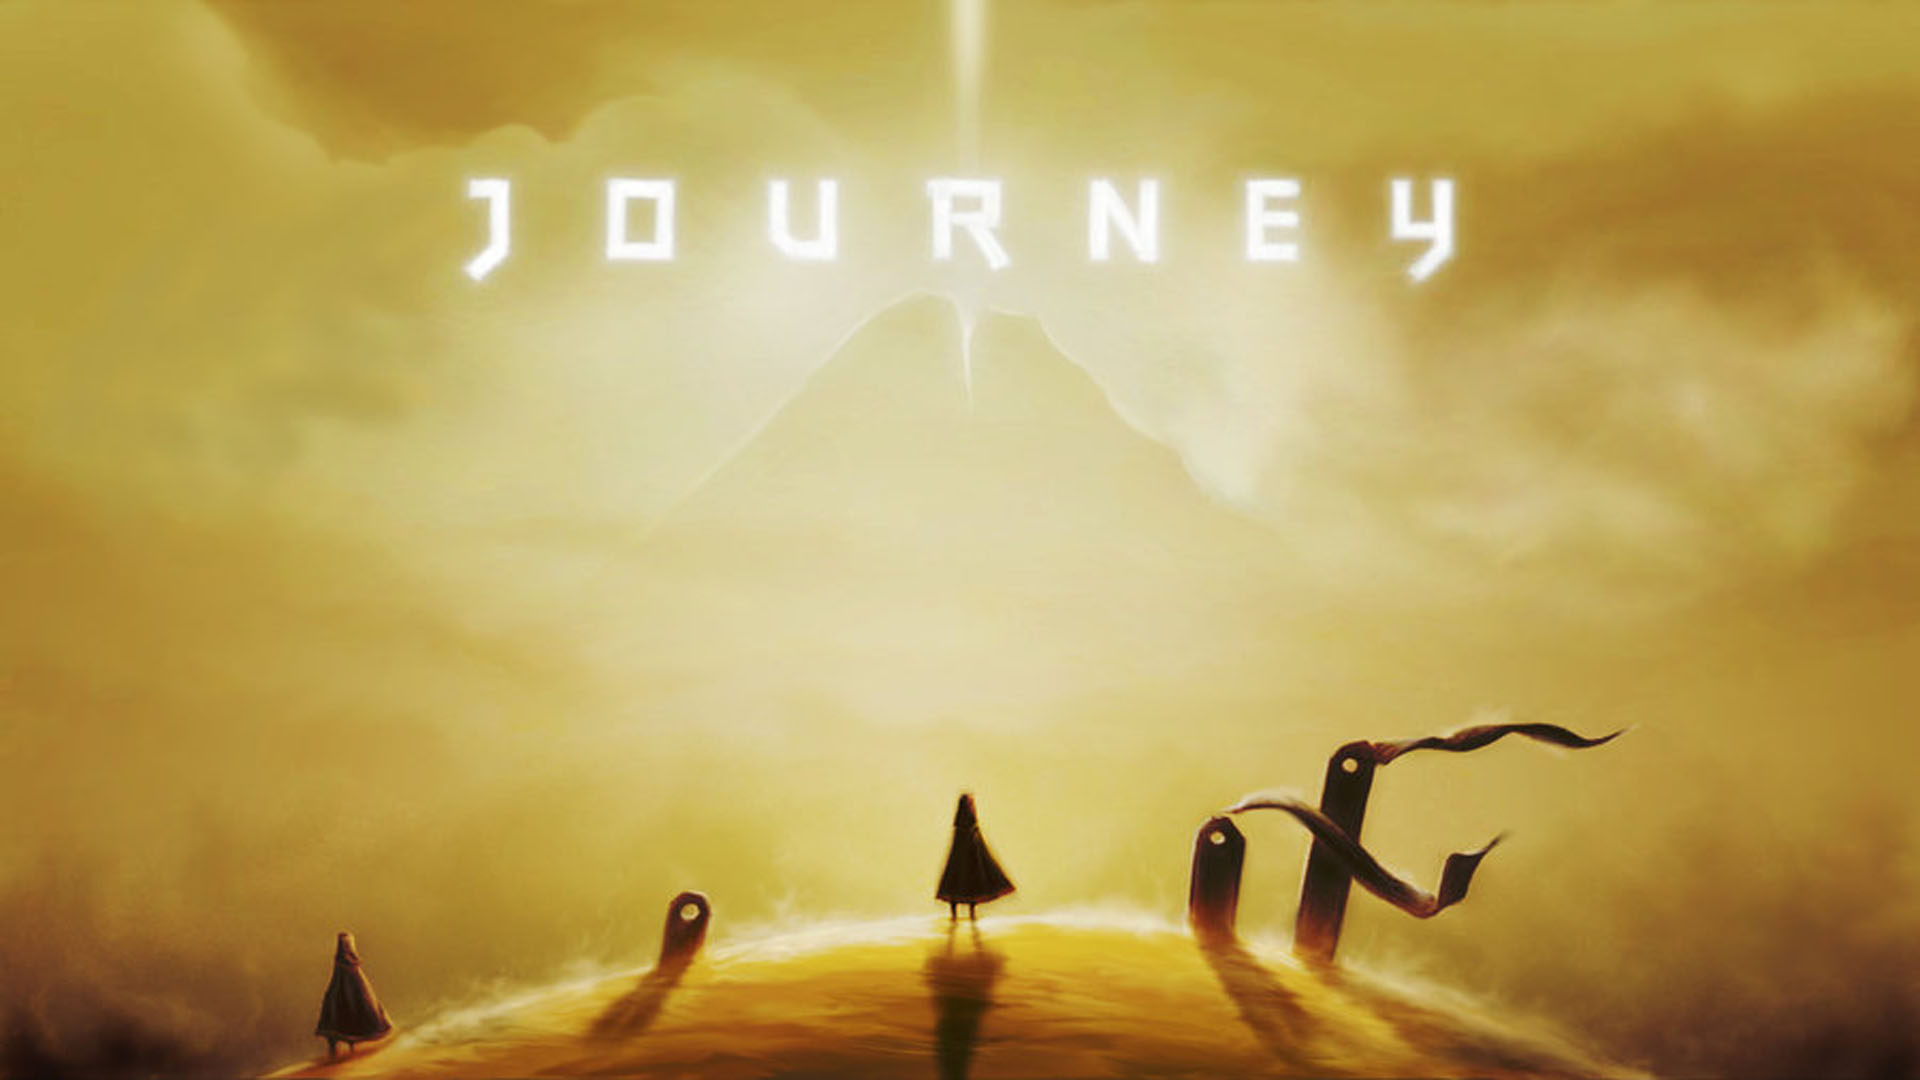 Journey HD Wallpapers and Background Images   stmednet 1920x1080